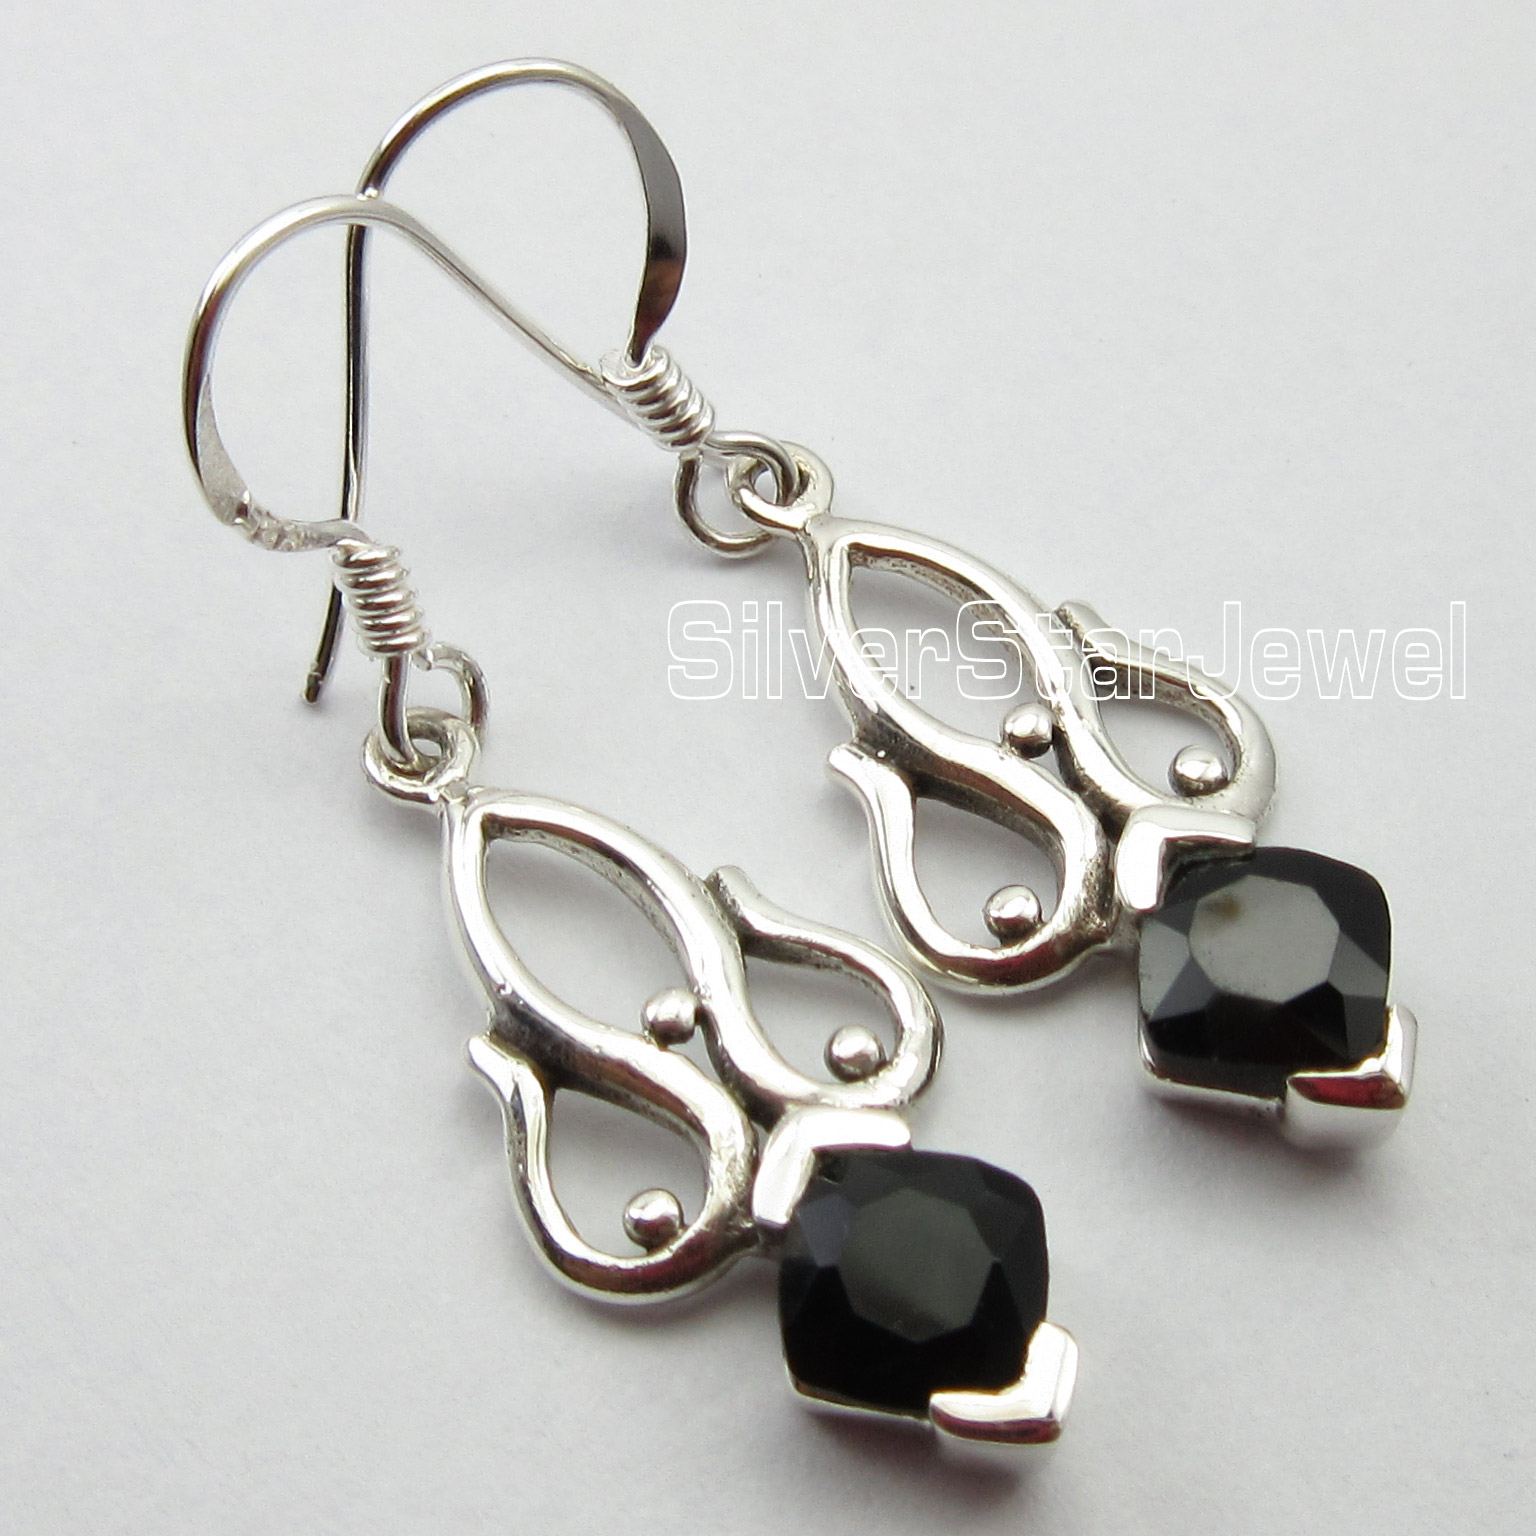 Square-BLACK-ONYX-Gemset-92-5-Pure-Silver-FRENCH-WIRE-Earrings-1-5-Inch